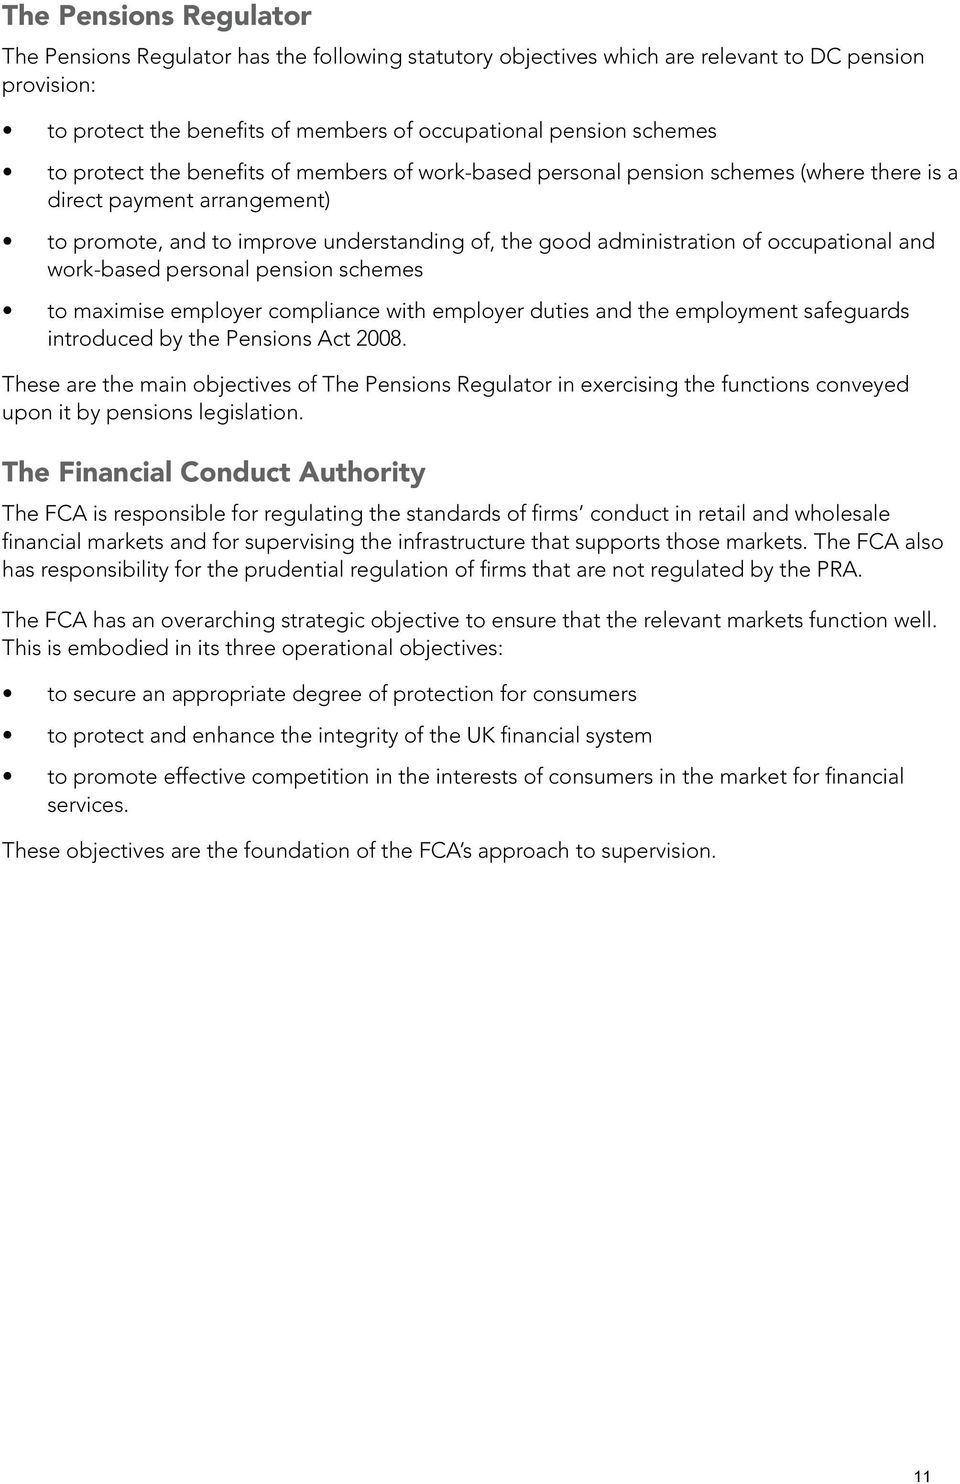 occupational and work-based personal pension schemes to maximise employer compliance with employer duties and the employment safeguards introduced by the Pensions Act 2008.